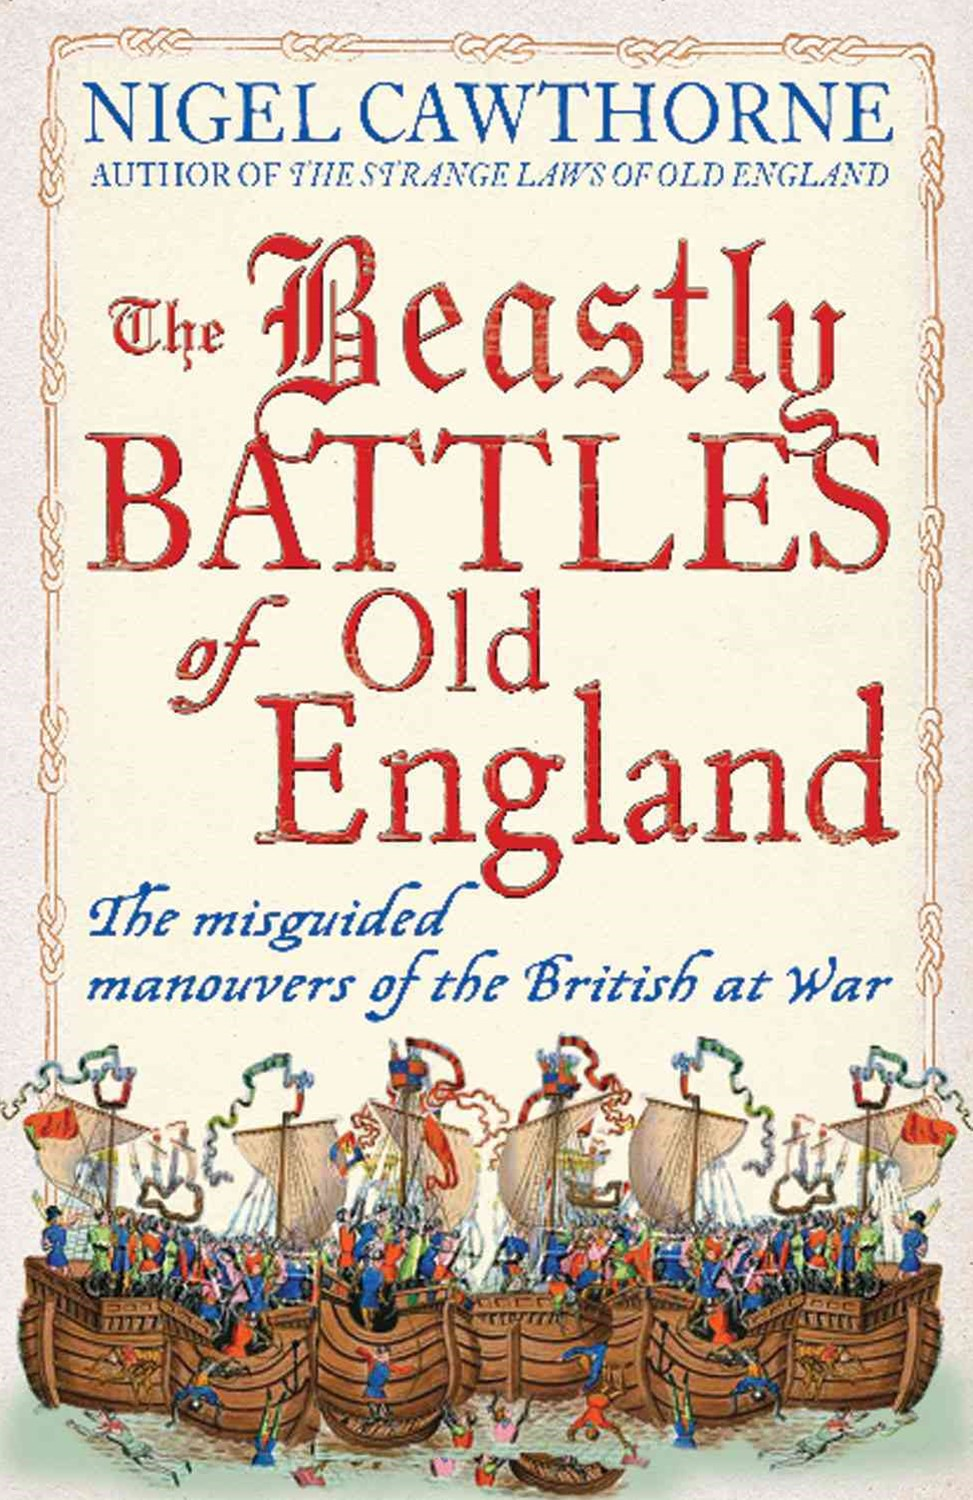 Beastly Battles of Old England